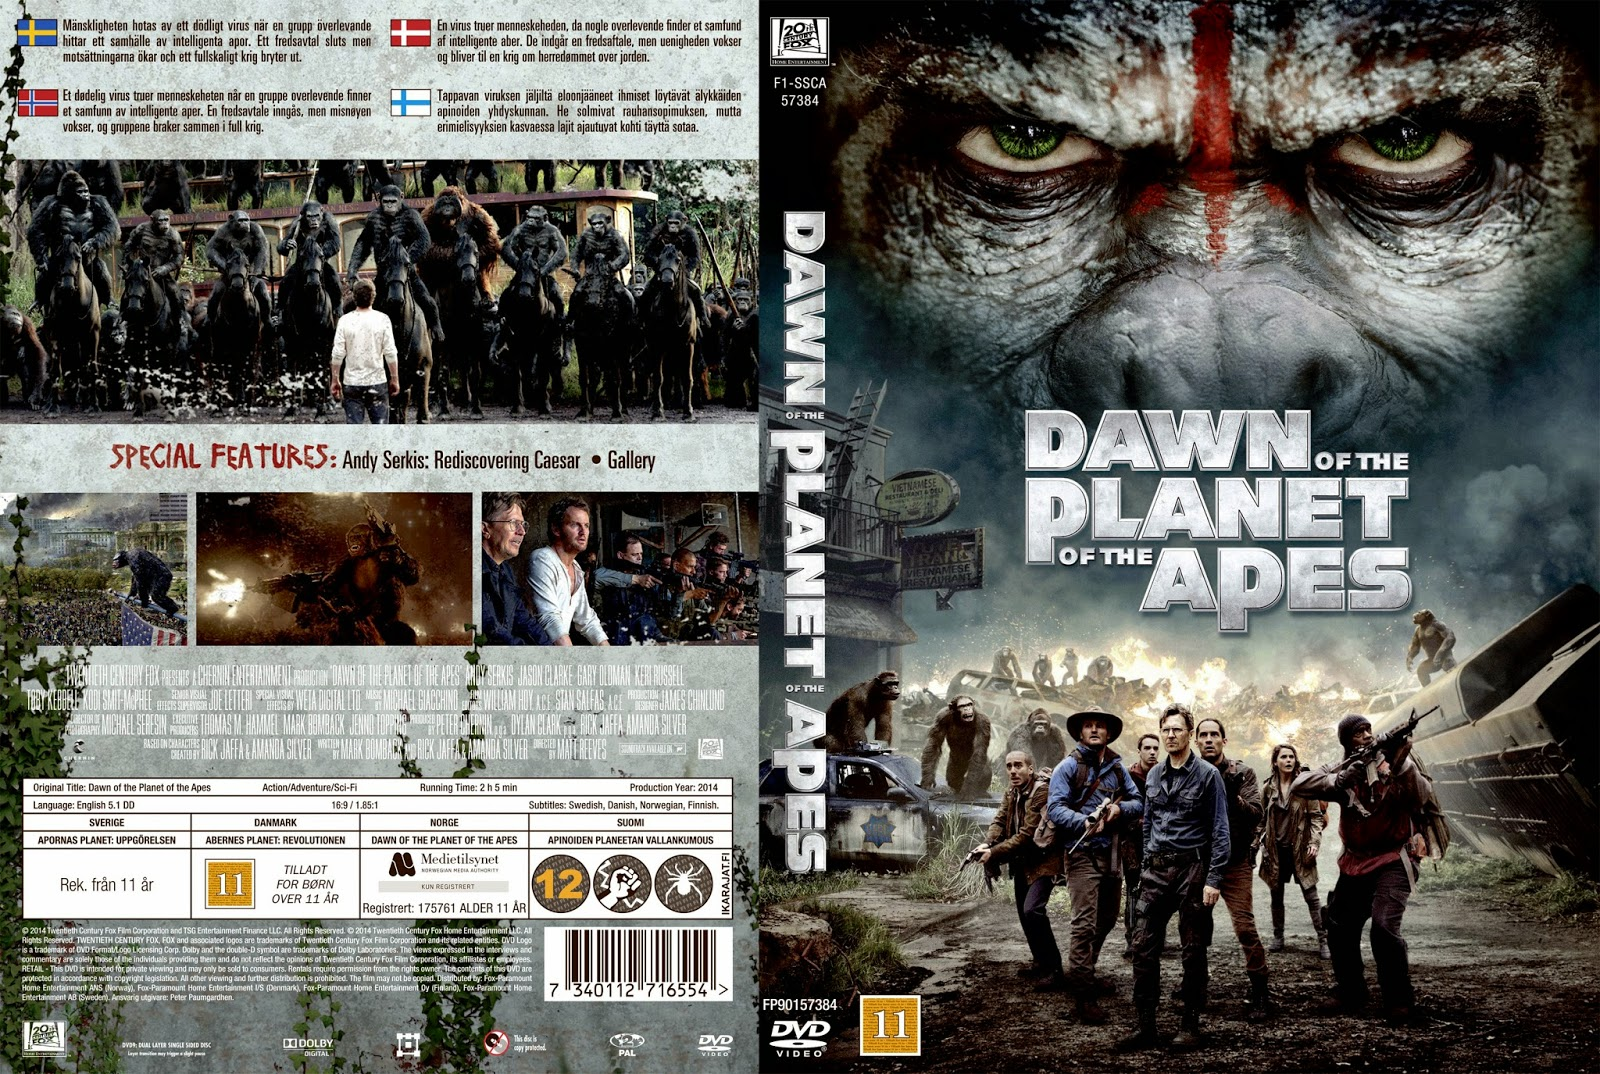 Archives Of The Apes: Dawn Of The Planet Of The Apes on ...